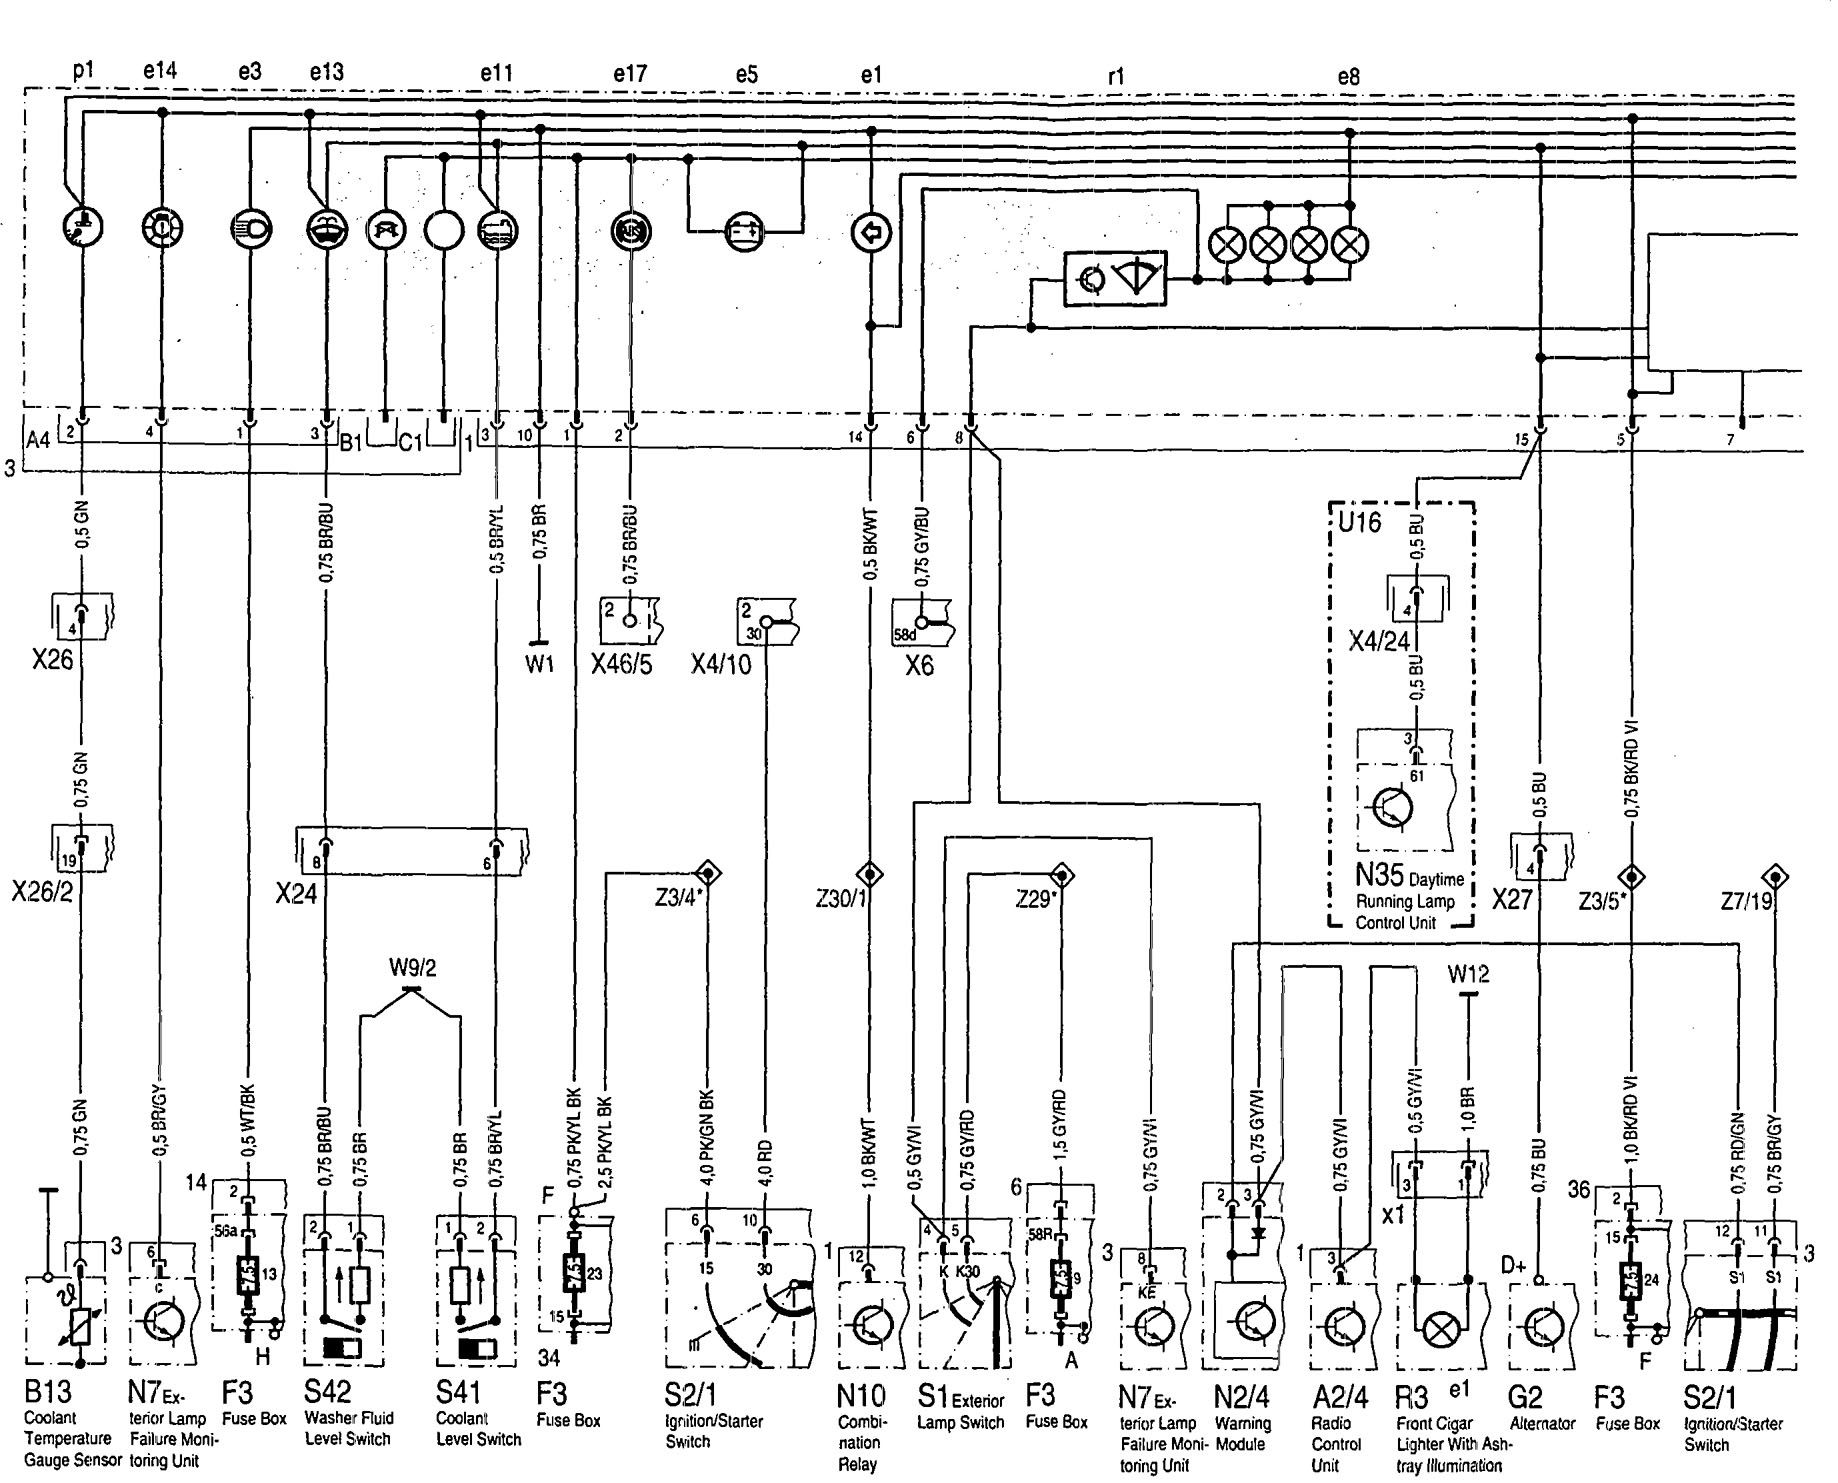 Mercedes-Benz 500SEL (1992 - 1993) - wiring diagrams ...